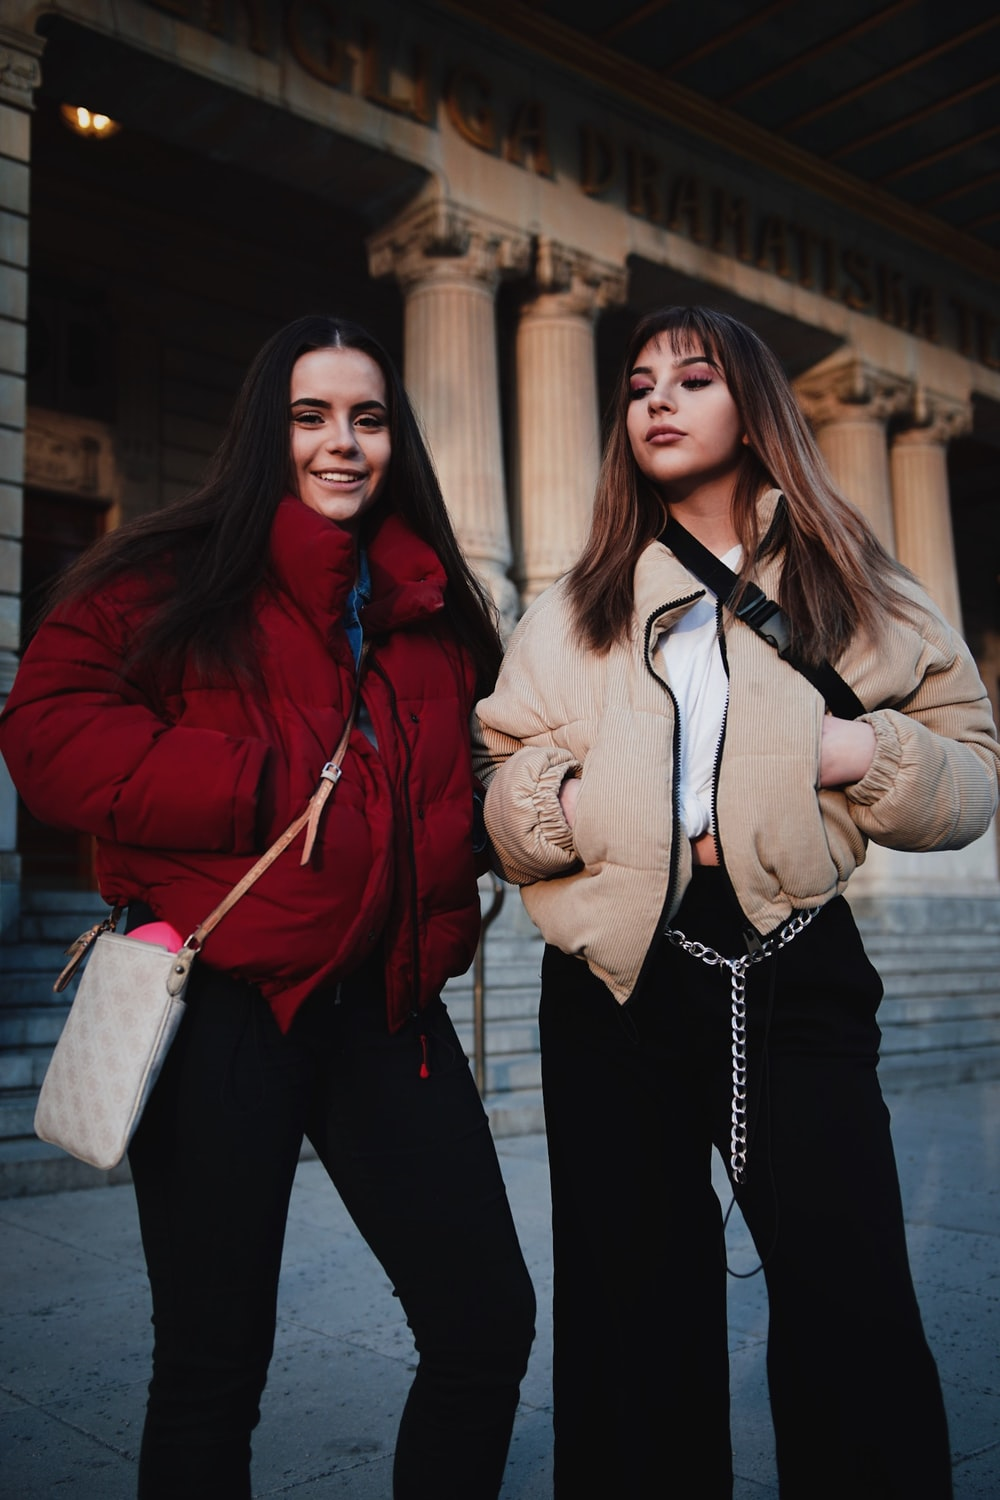 two woman standing near building